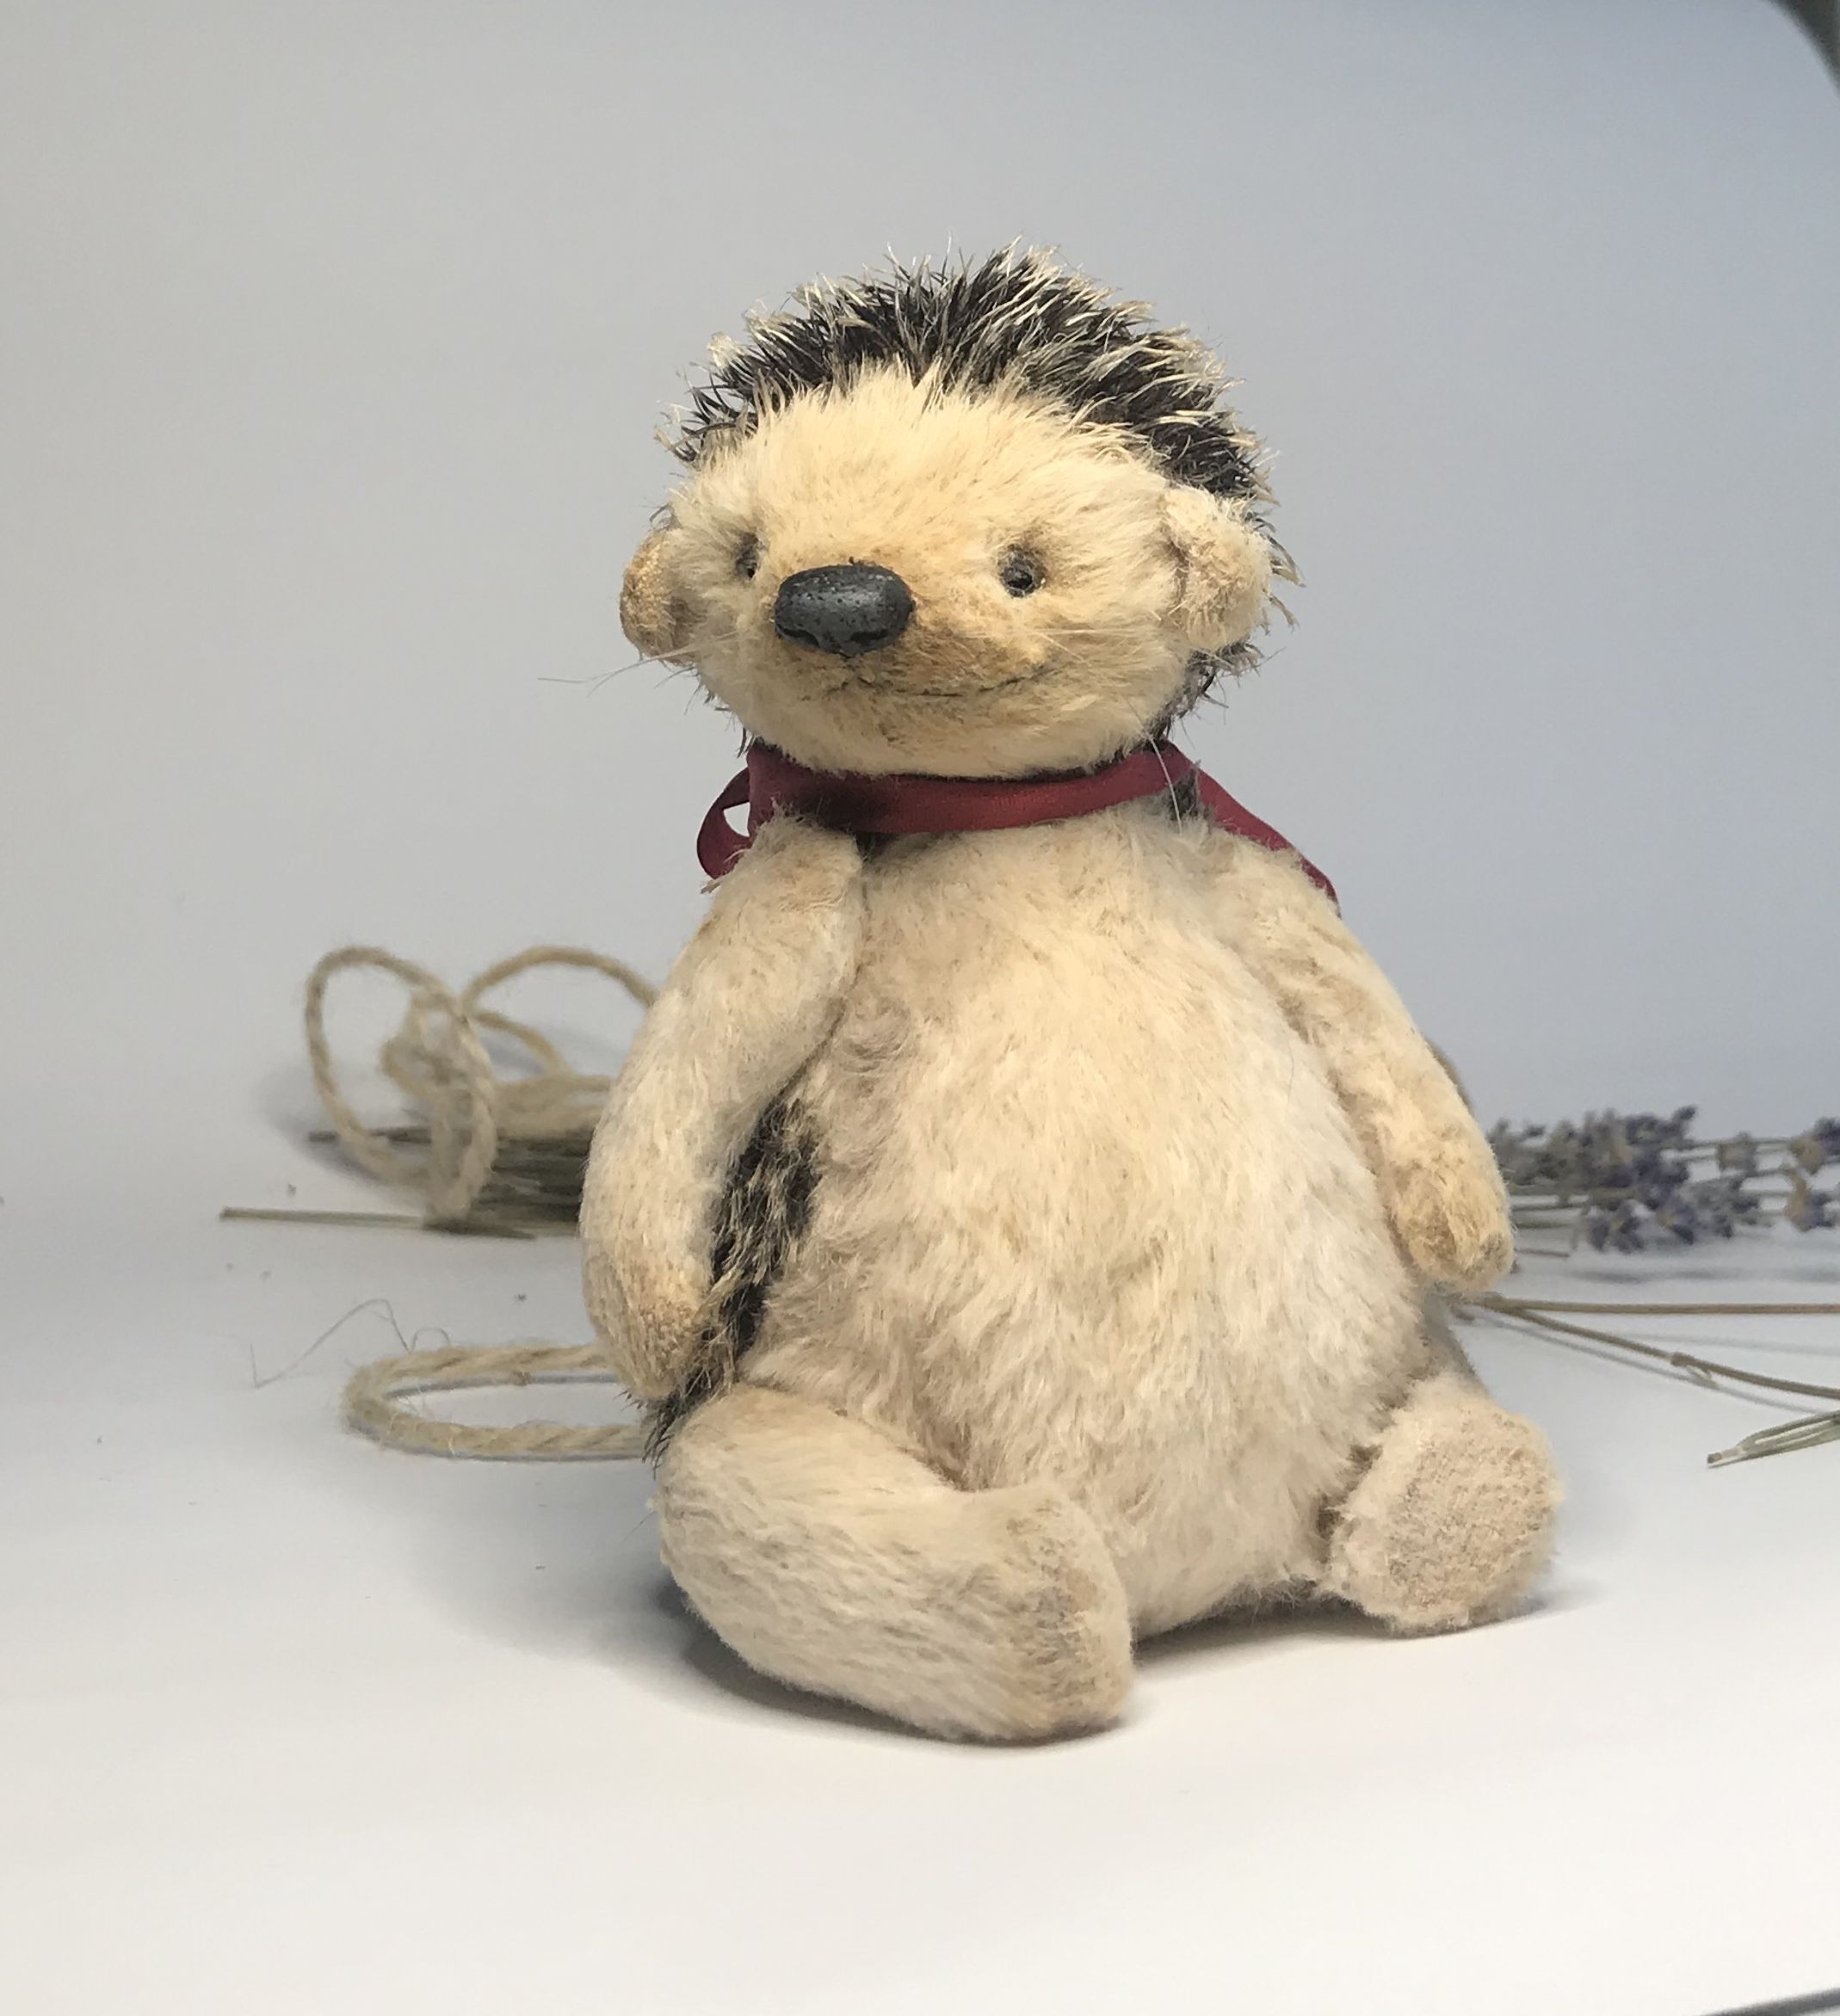 Miniature Hedgehog Stutted Toy For Home Decor Etsy Toys Pet Toys Hedgehog [ 2343 x 2138 Pixel ]